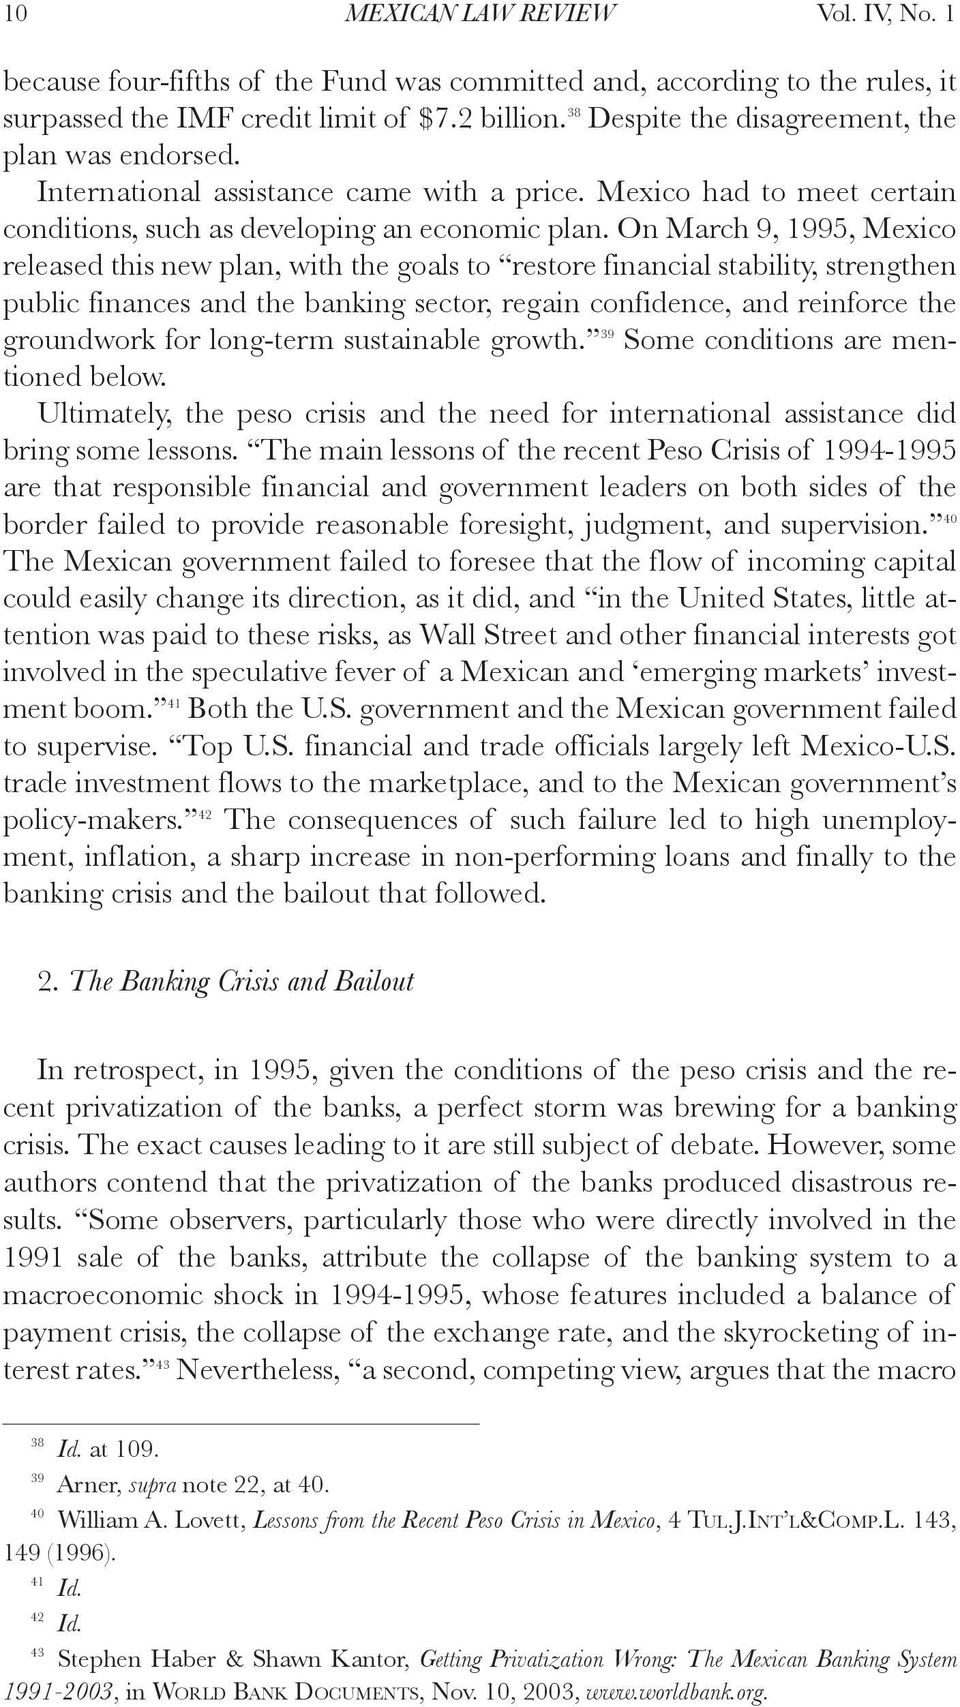 On March 9, 1995, Mexico released this new plan, with the goals to restore financial stability, strengthen public finances and the banking sector, regain confidence, and reinforce the groundwork for